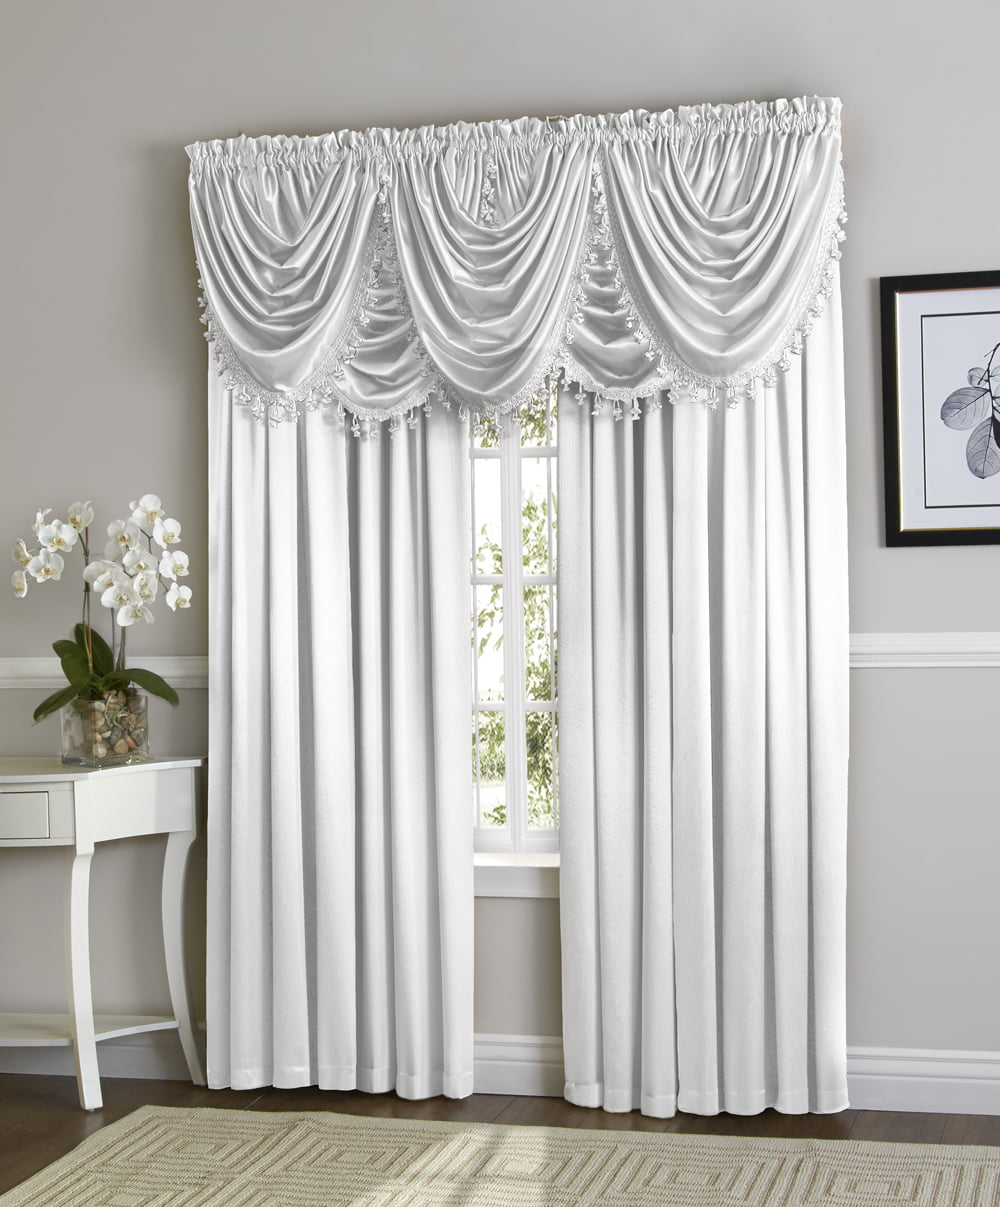 Hyatt Window Curtain & Fringed Valance Complete 9 Piece Window Treatment Set White by